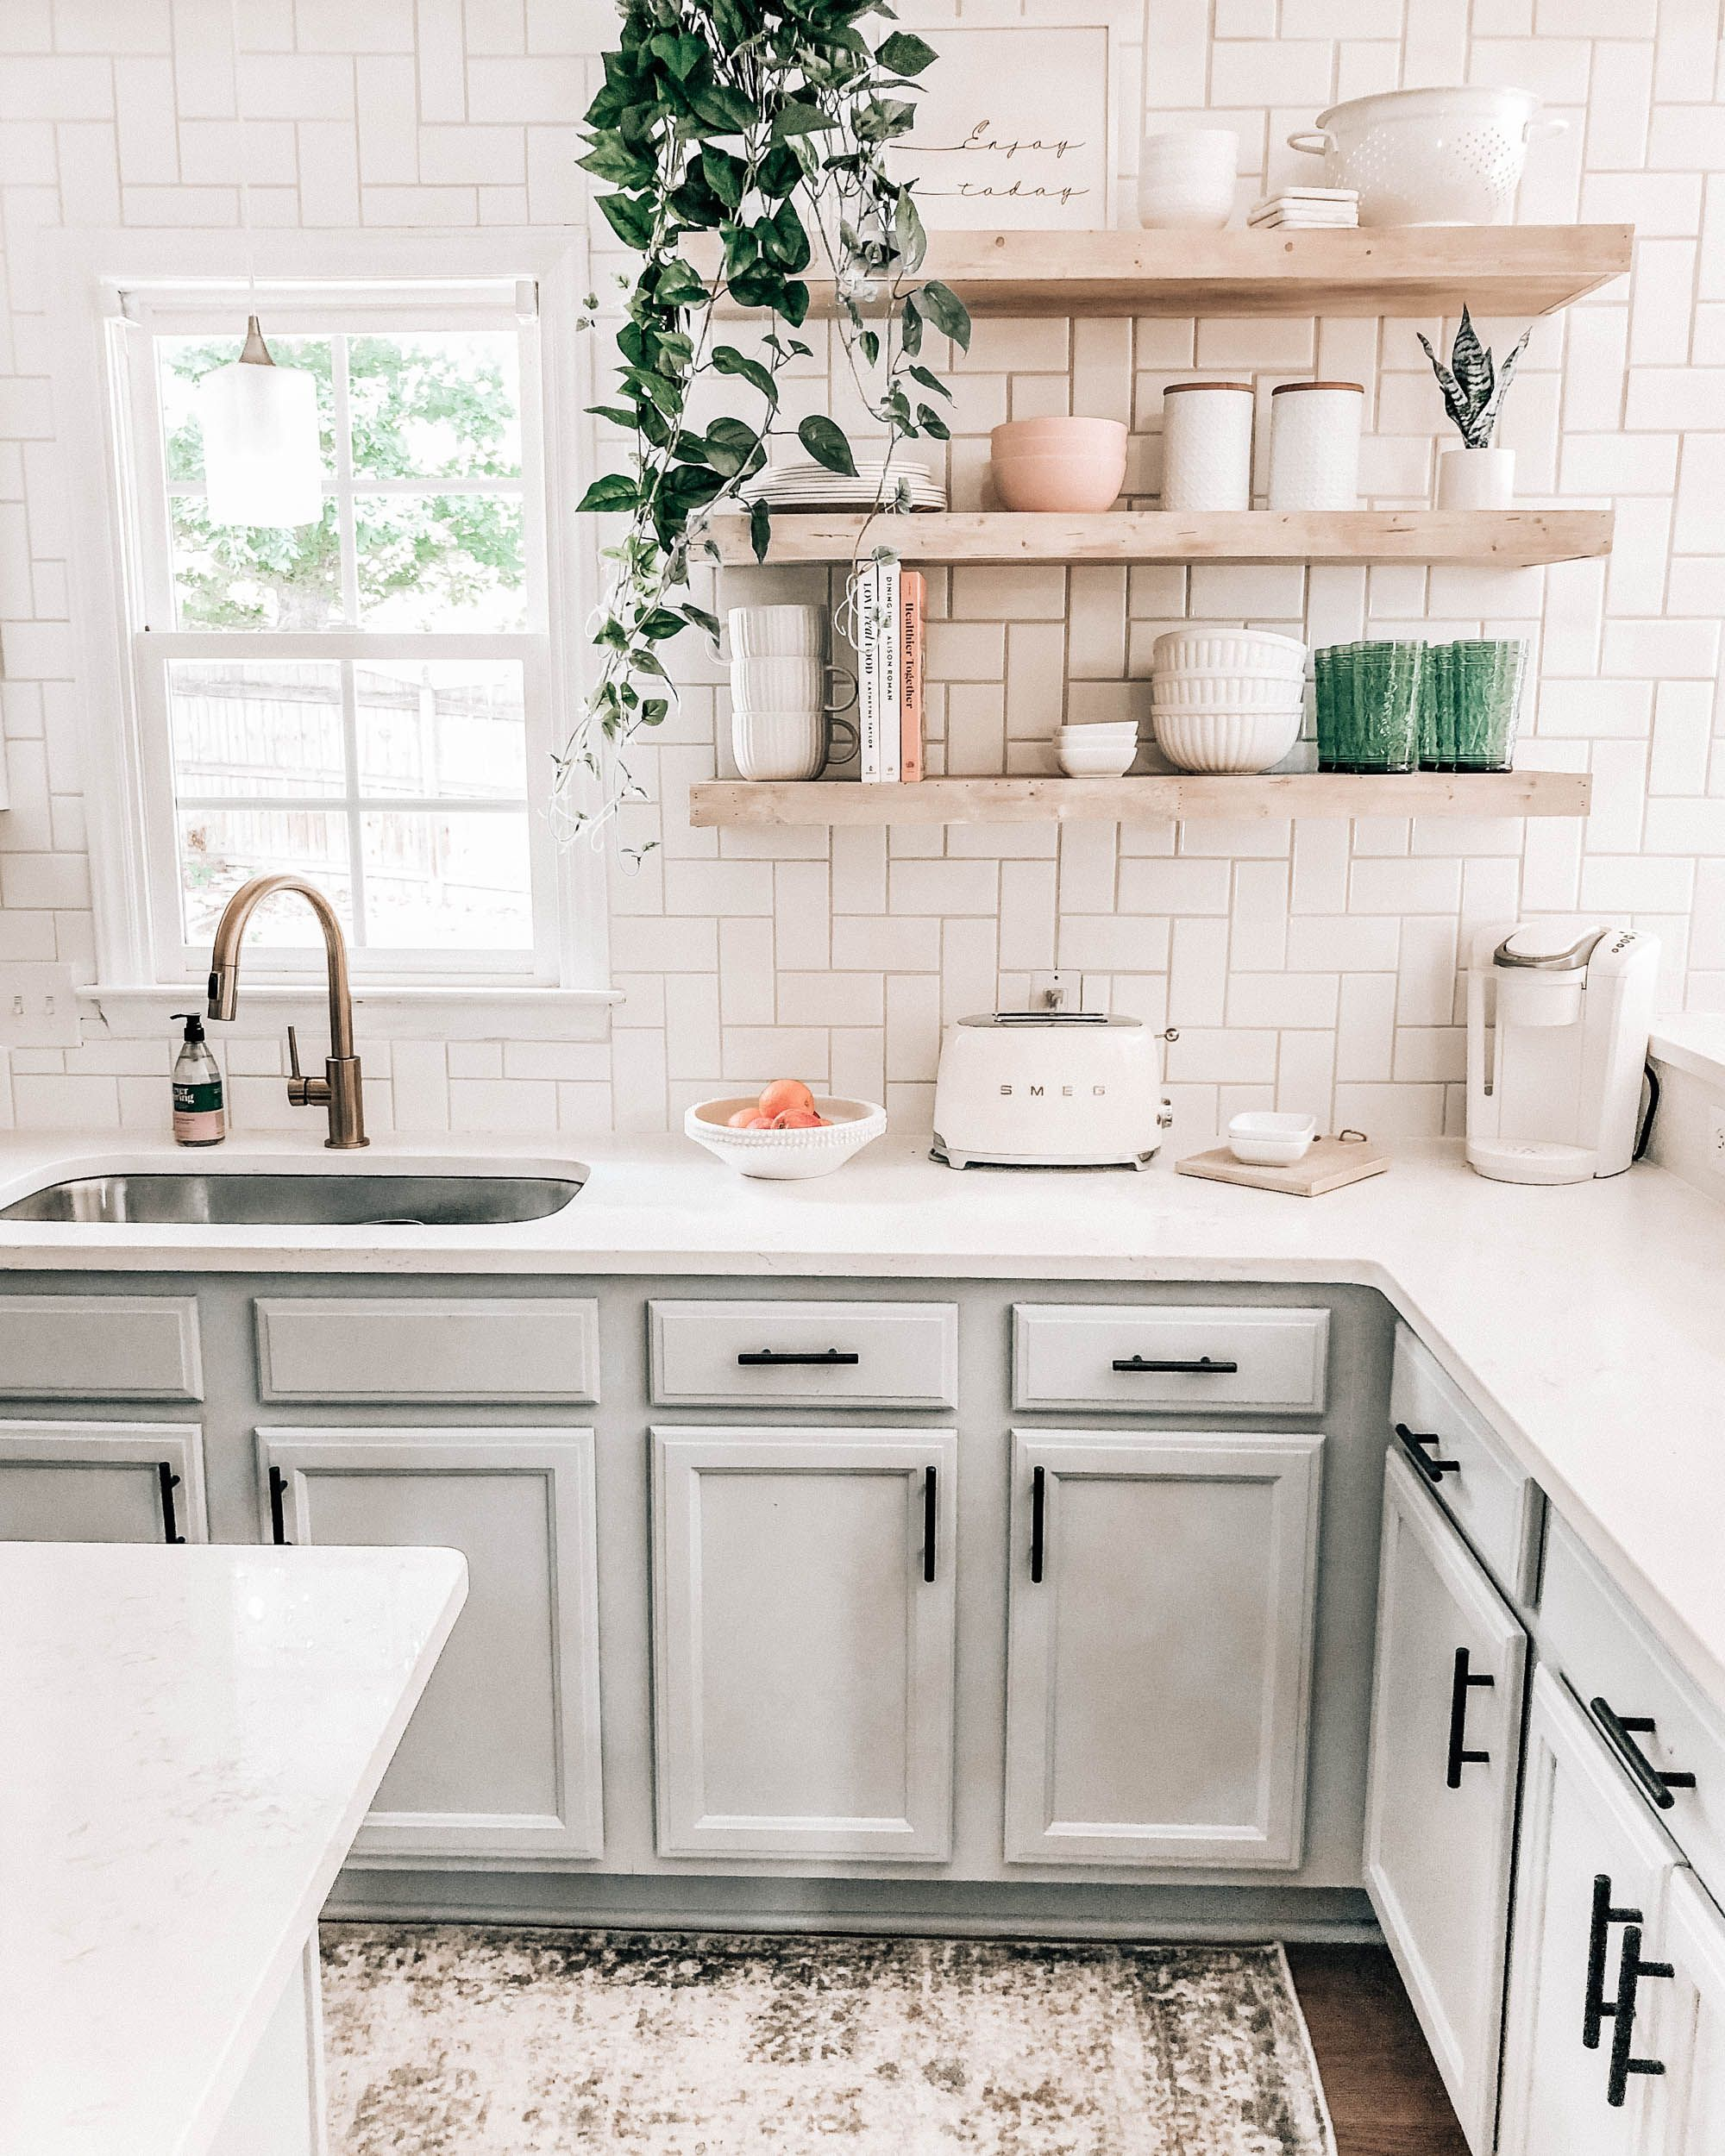 Kitchen Gadgets On Our Counter (and Radar) - Pretty in the Pines, North Carolina…